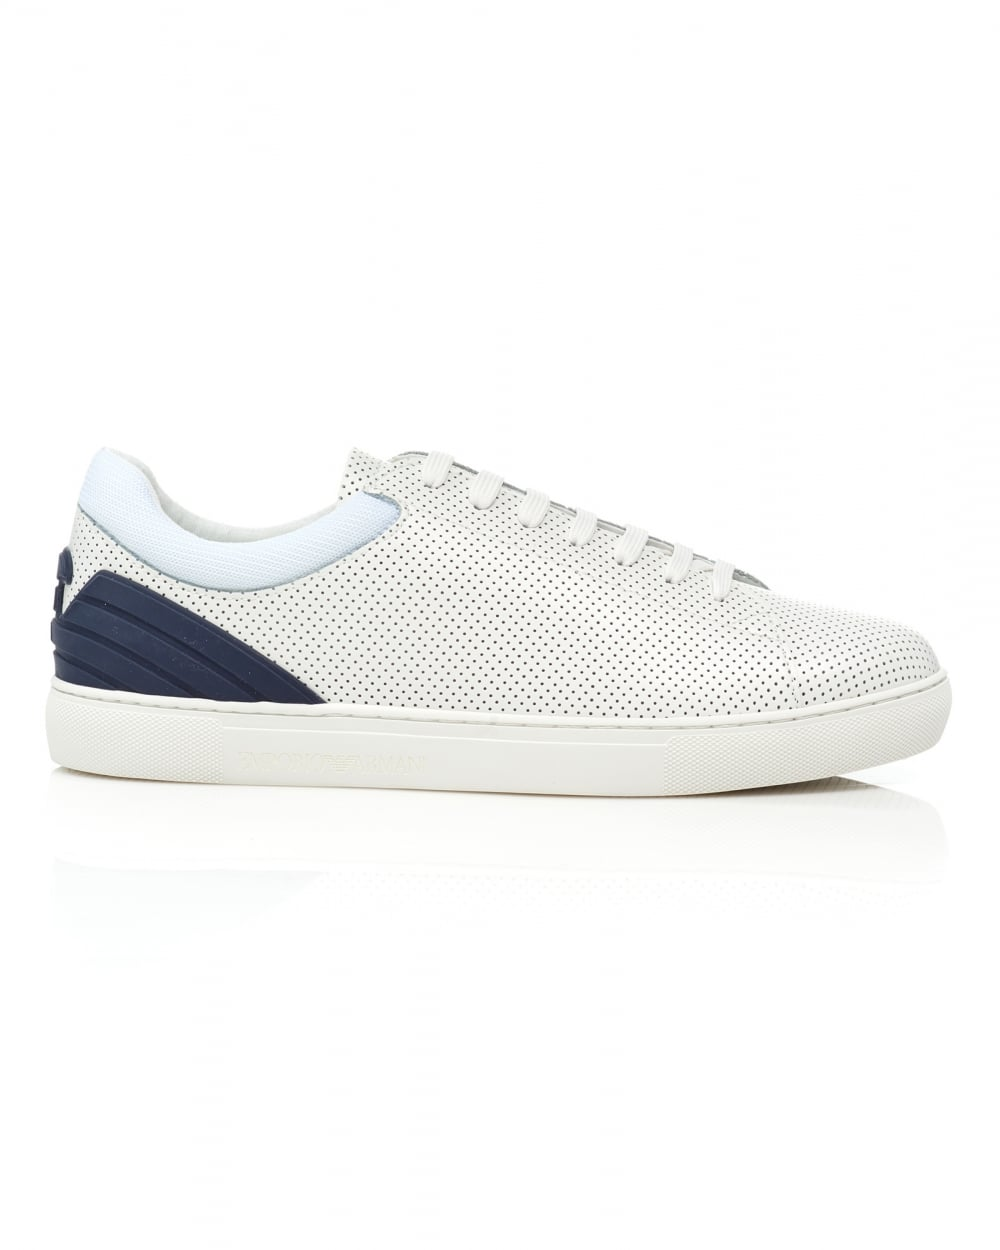 c138e349 Mens Perforated Trainers, Lace Up White Leather Sneakers